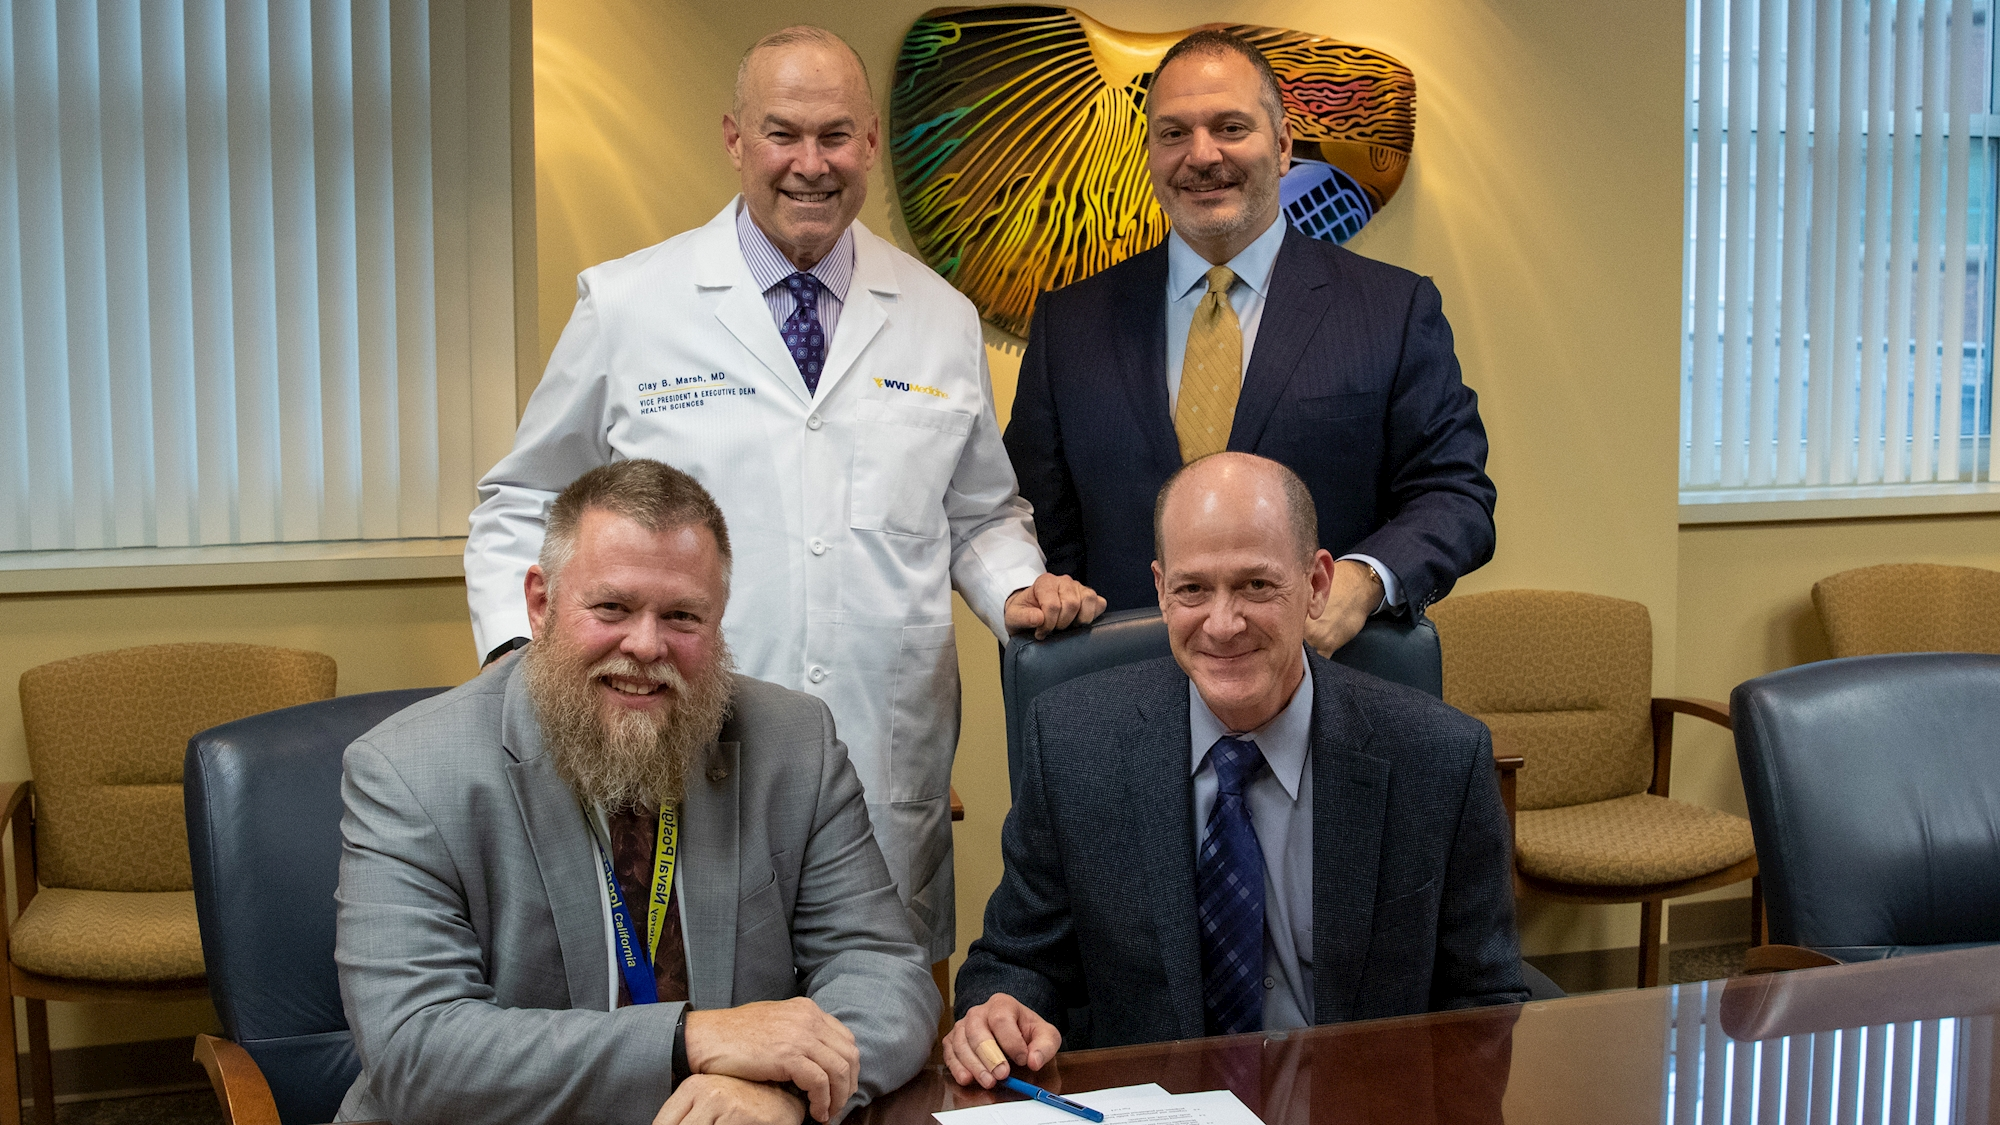 Leadership from the WVU Health Sciences and MCHD met last month to sign the agreement, formally establishing the Academic Health Department.